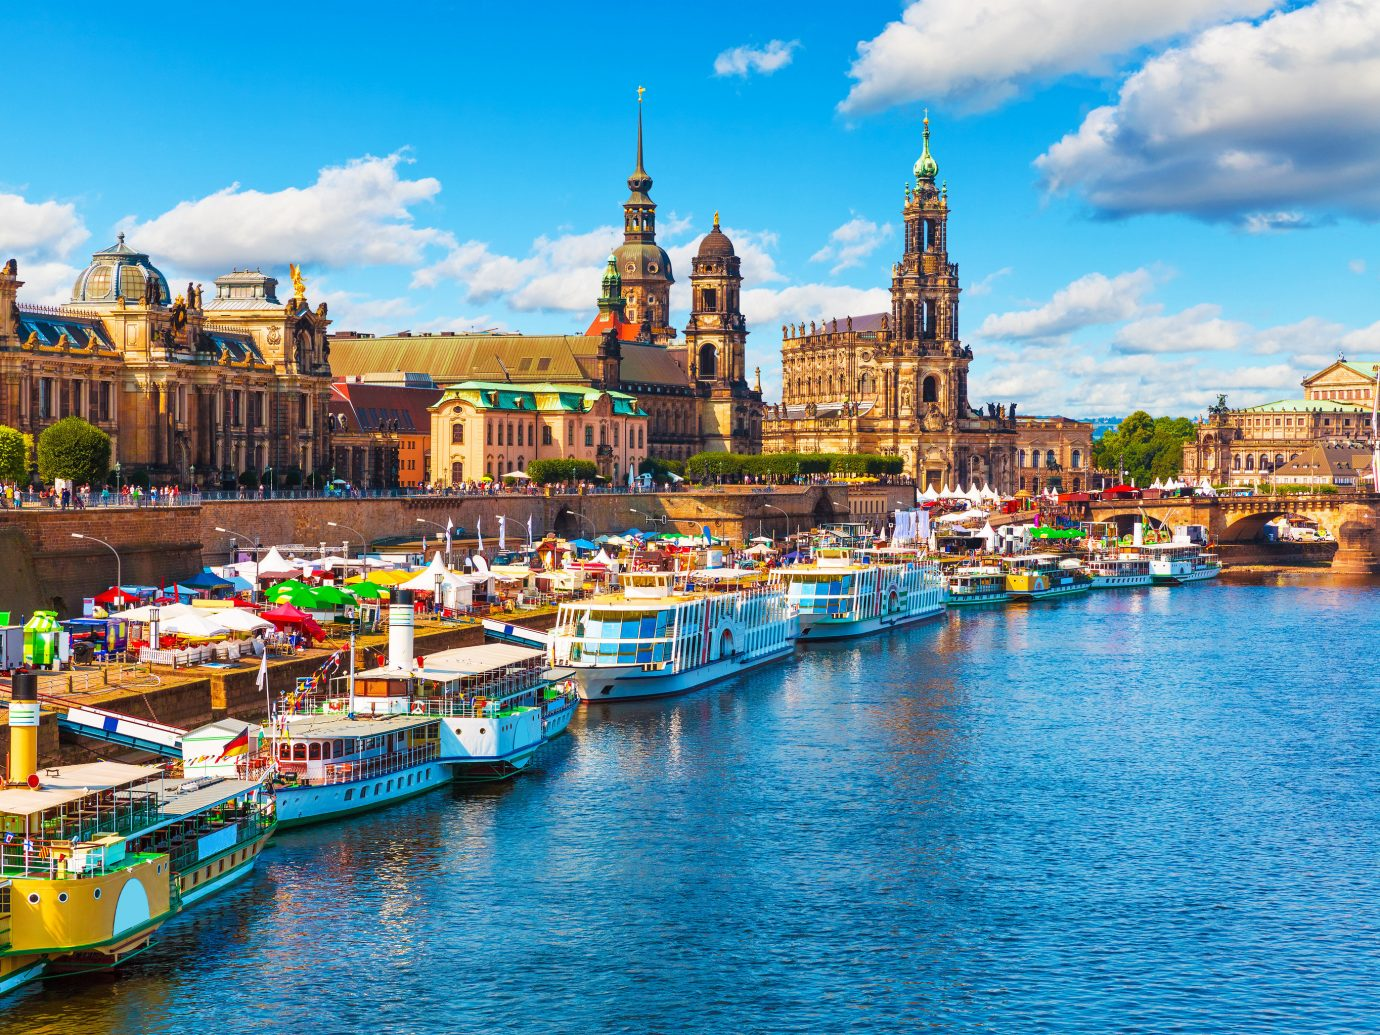 Berlin europe Germany Hamburg Munich Trip Ideas waterway body of water sky water transportation reflection water landmark Harbor City Town Canal cityscape port River channel evening tourism metropolitan area Boat marina watercraft